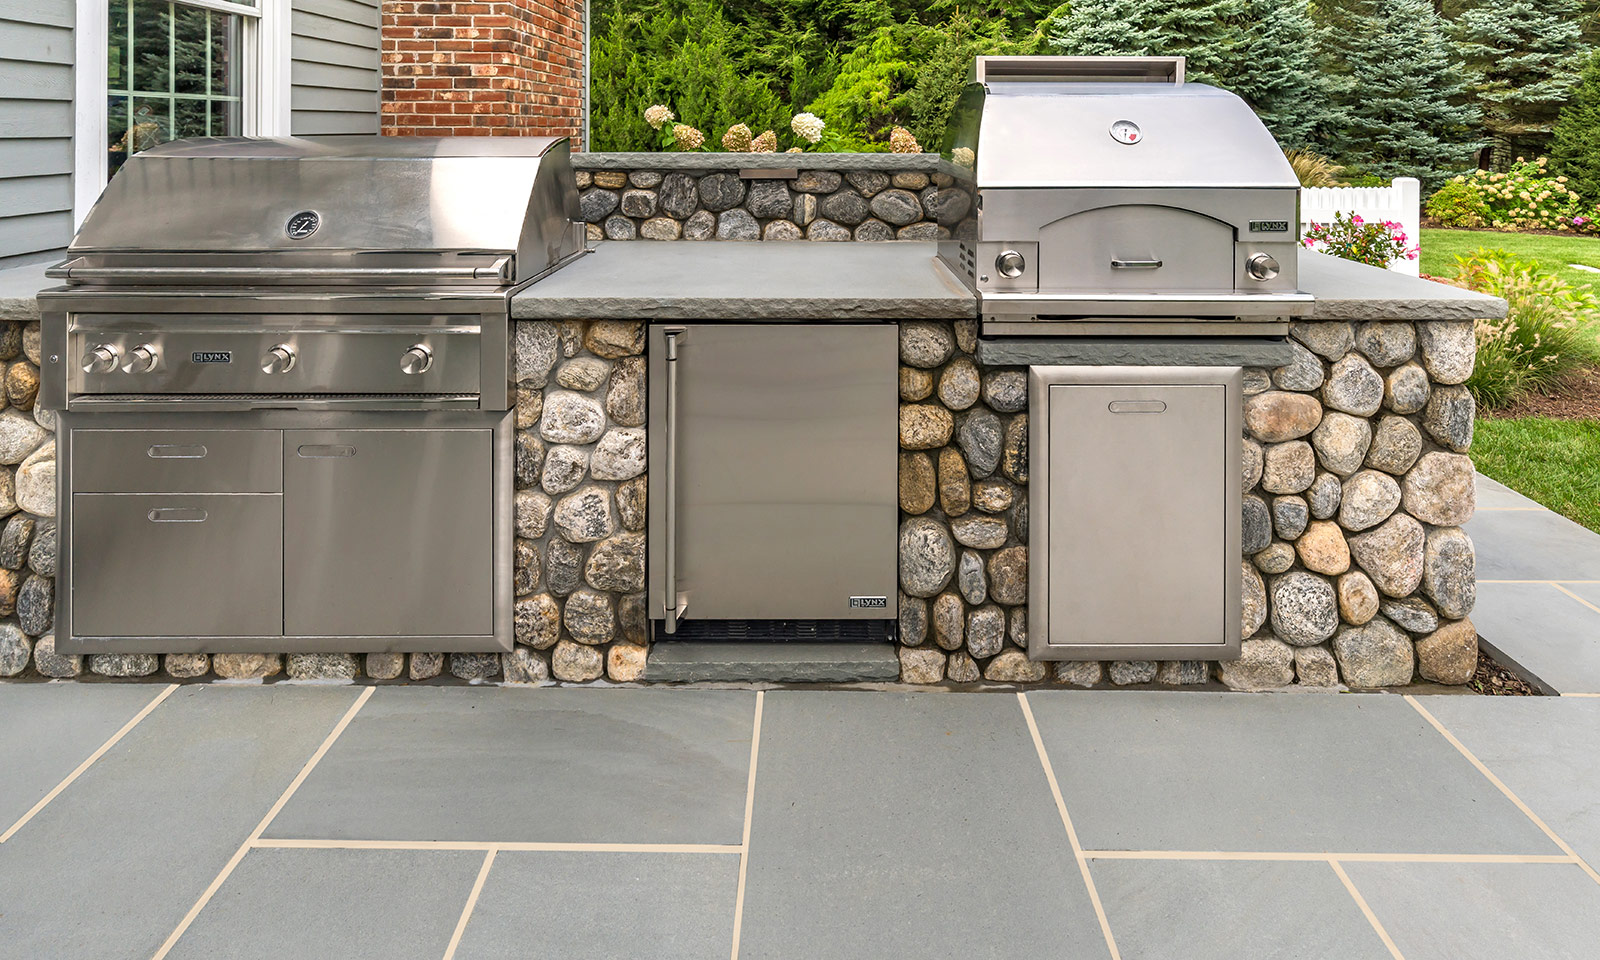 Fieldstone grilling station